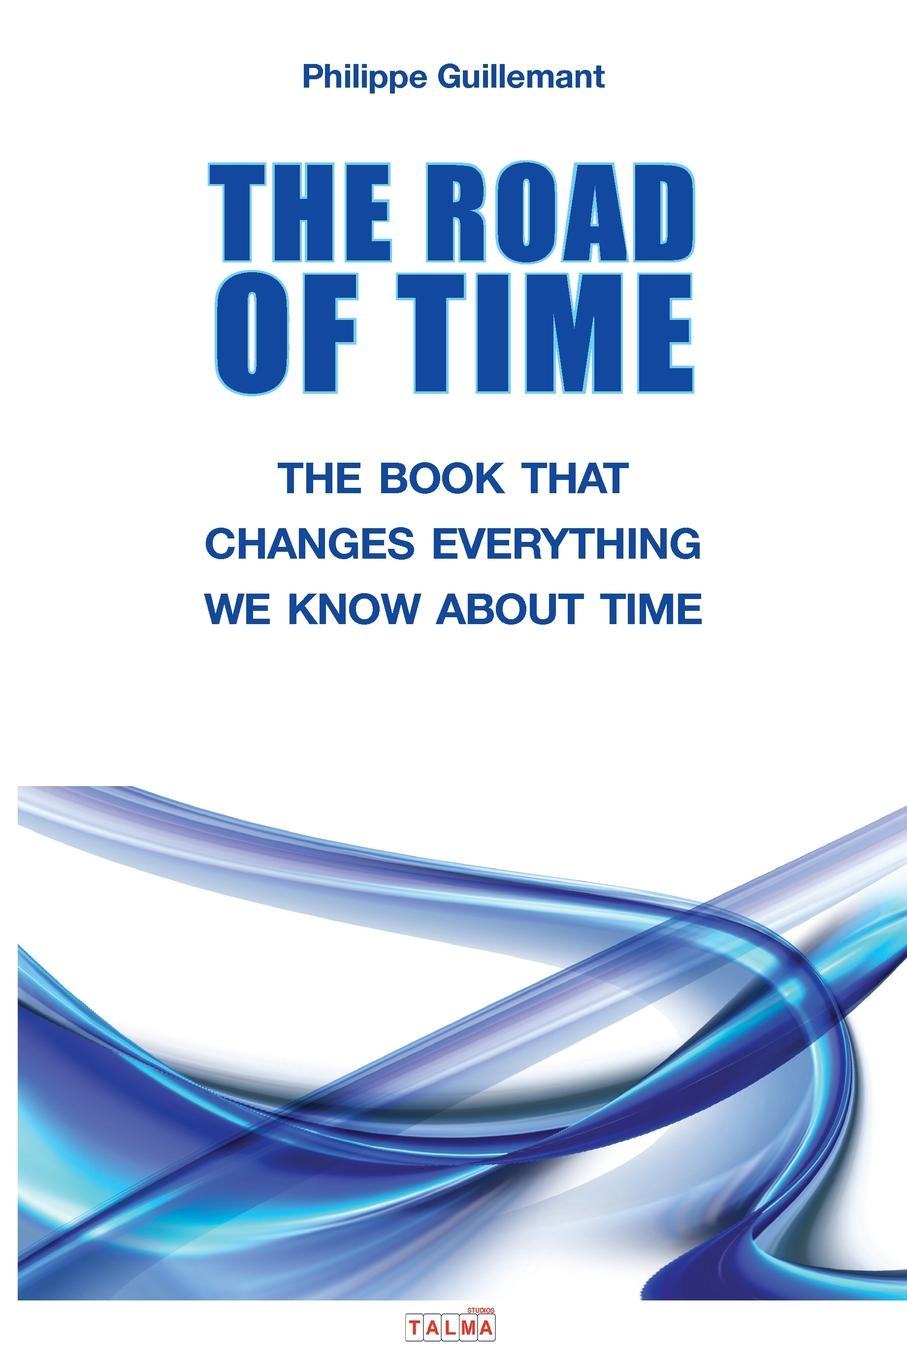 Philippe Guillemant THE ROAD OF TIME. THE BOOK THAT CHANGES EVERYTHING WE KNOW ABOUT TIME